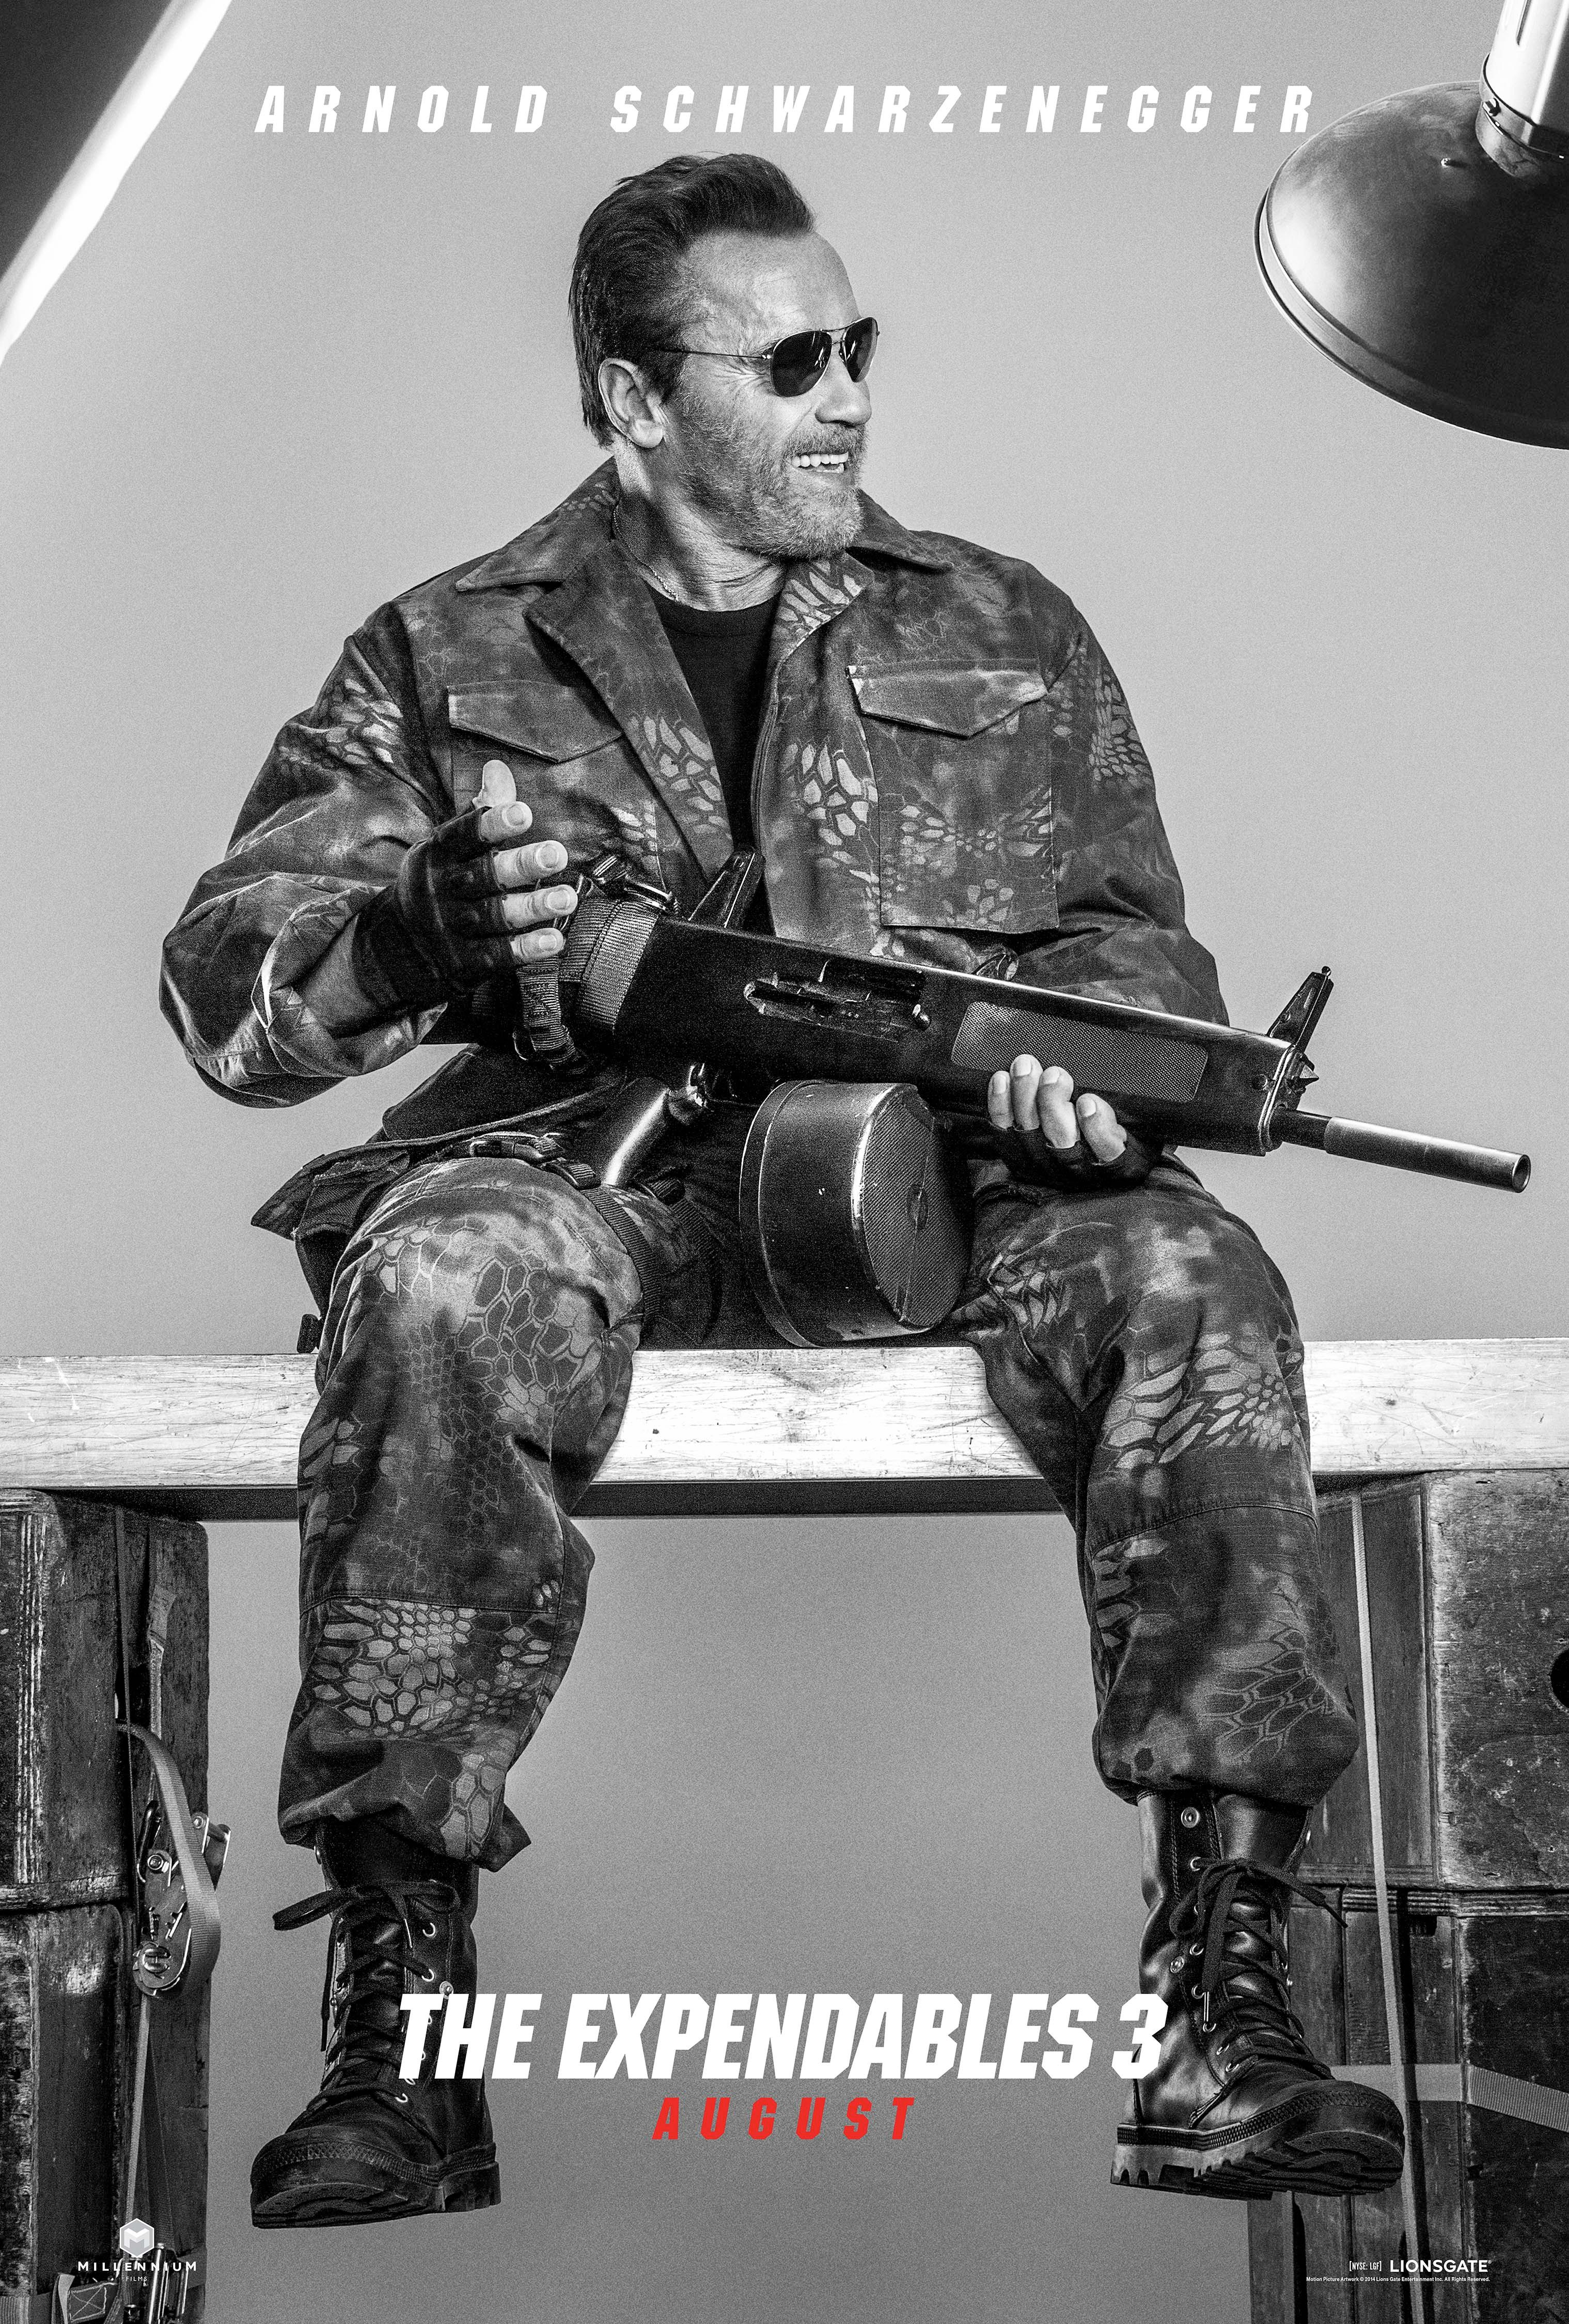 THE EXPENDABLES 3 Posters. THE EXPENDABLES 3 Stars ...